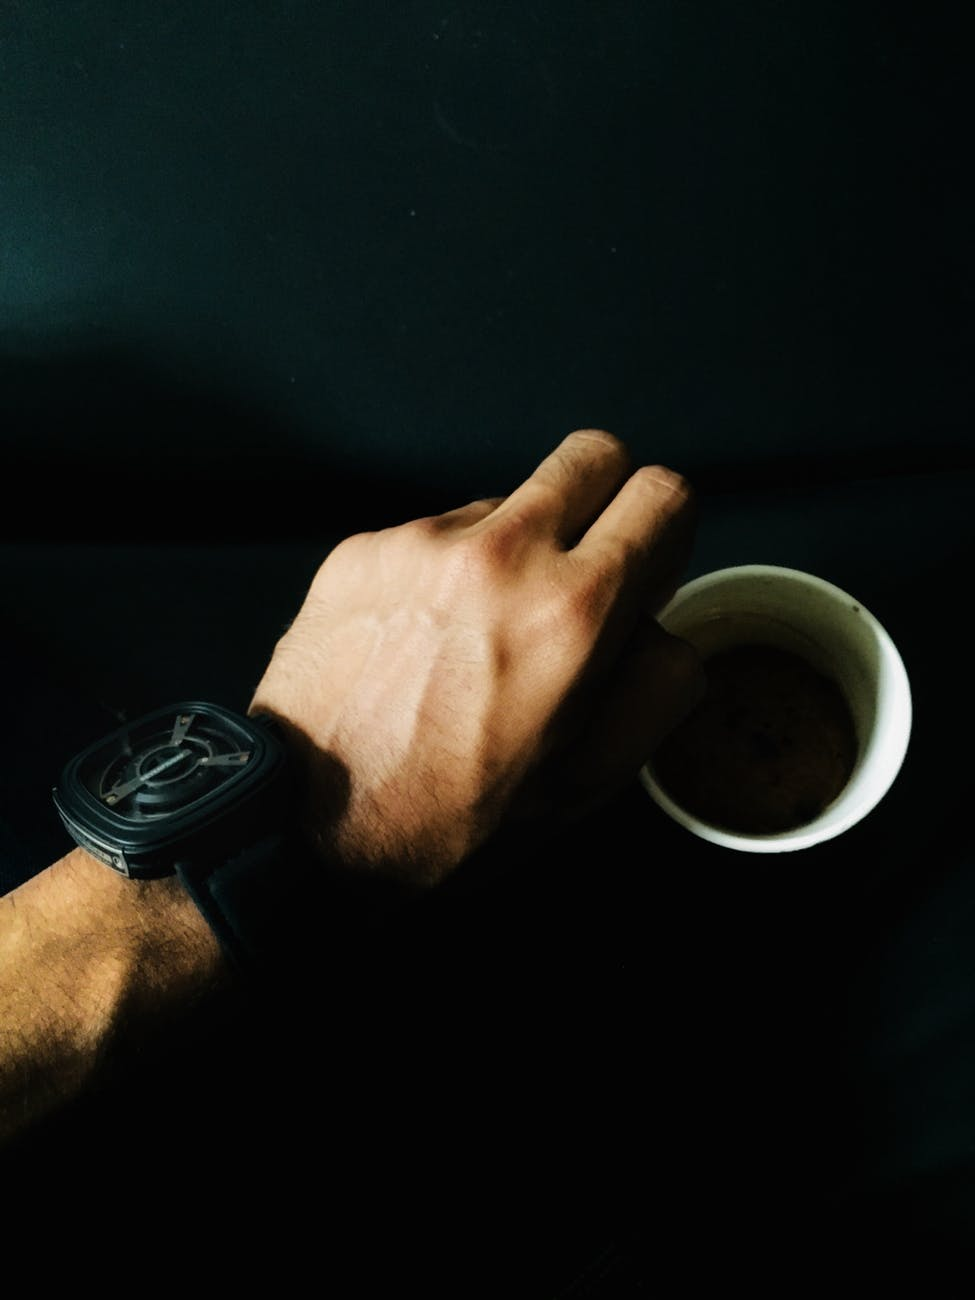 person hand and cup of coffee